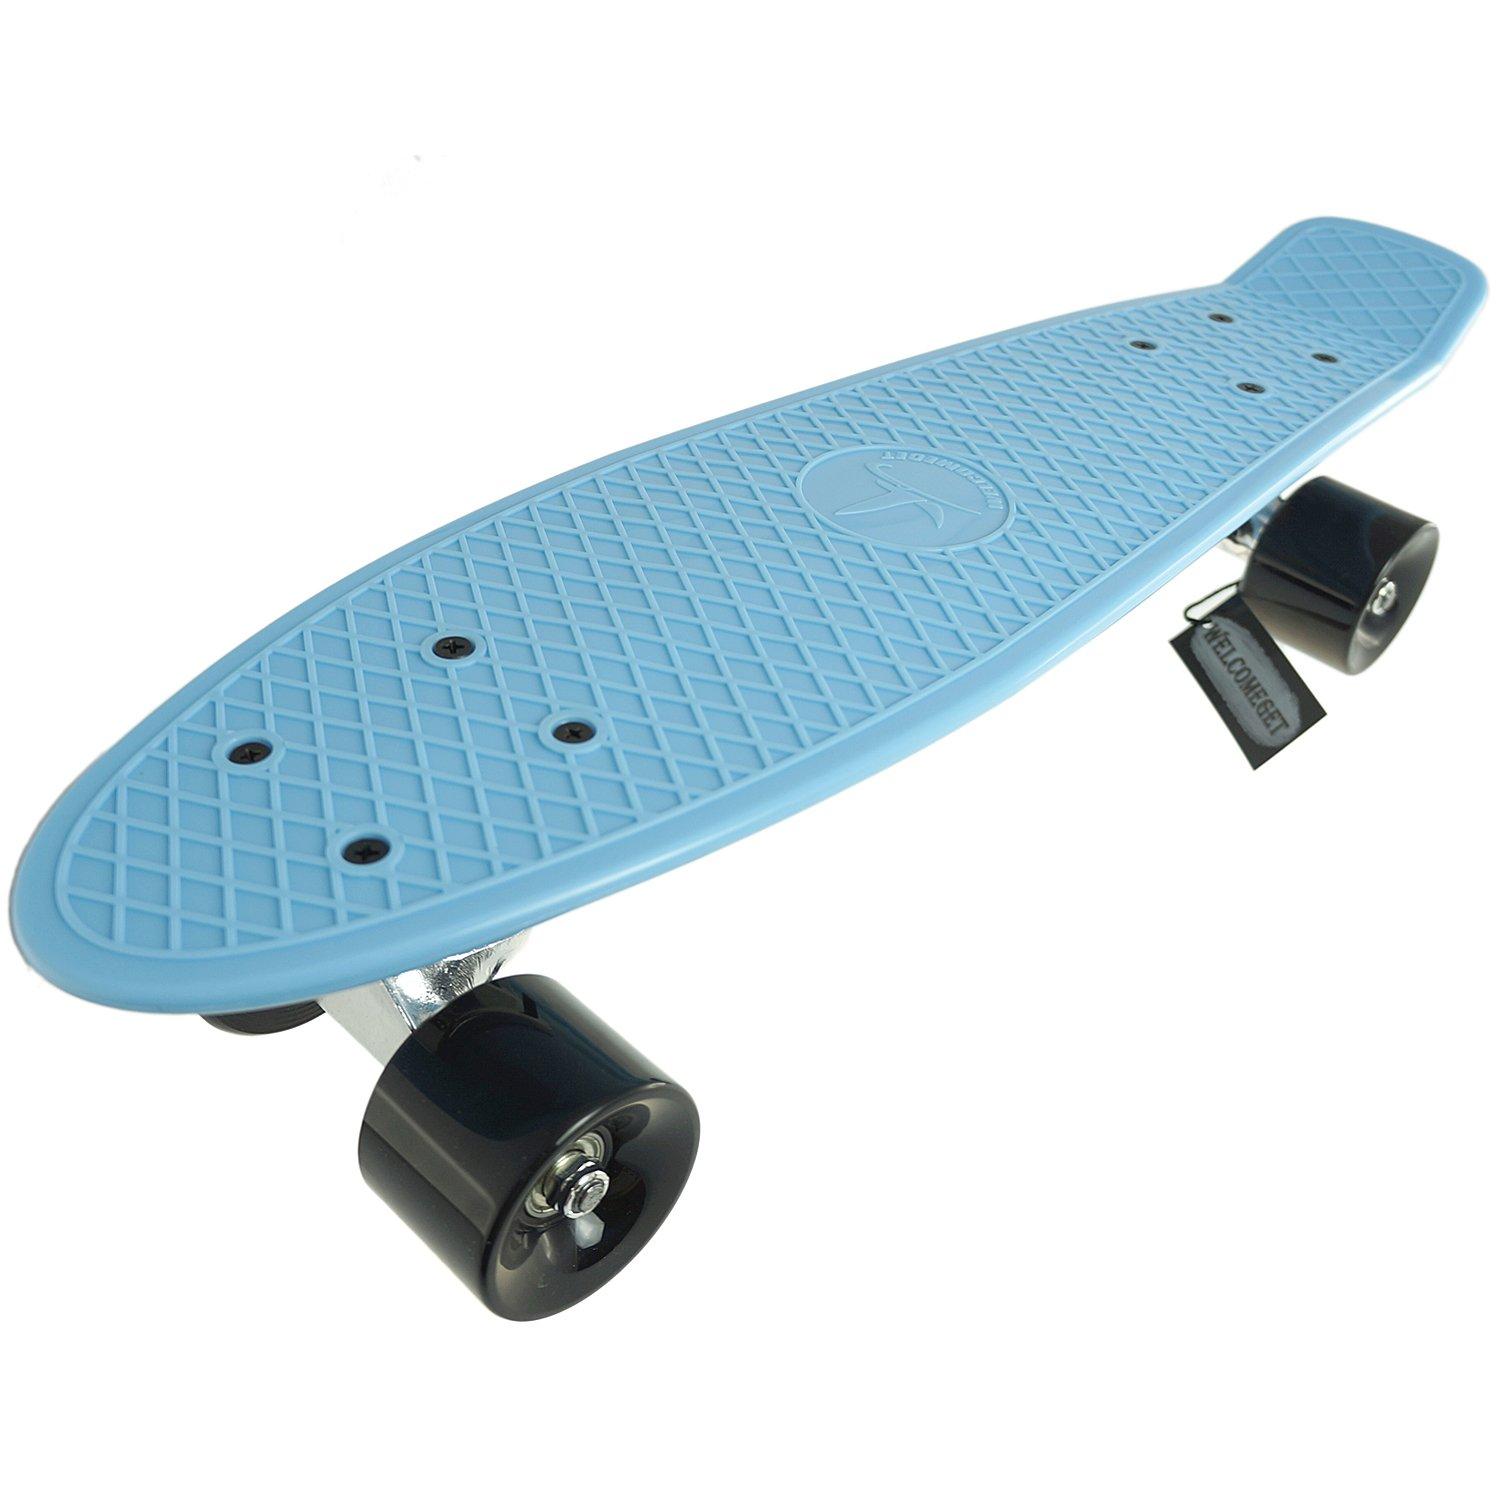 Welcomeget Complete Plastic Skateboard Fish Cruiser Standard Board Blue Deck complete skateboard set chocolate deck